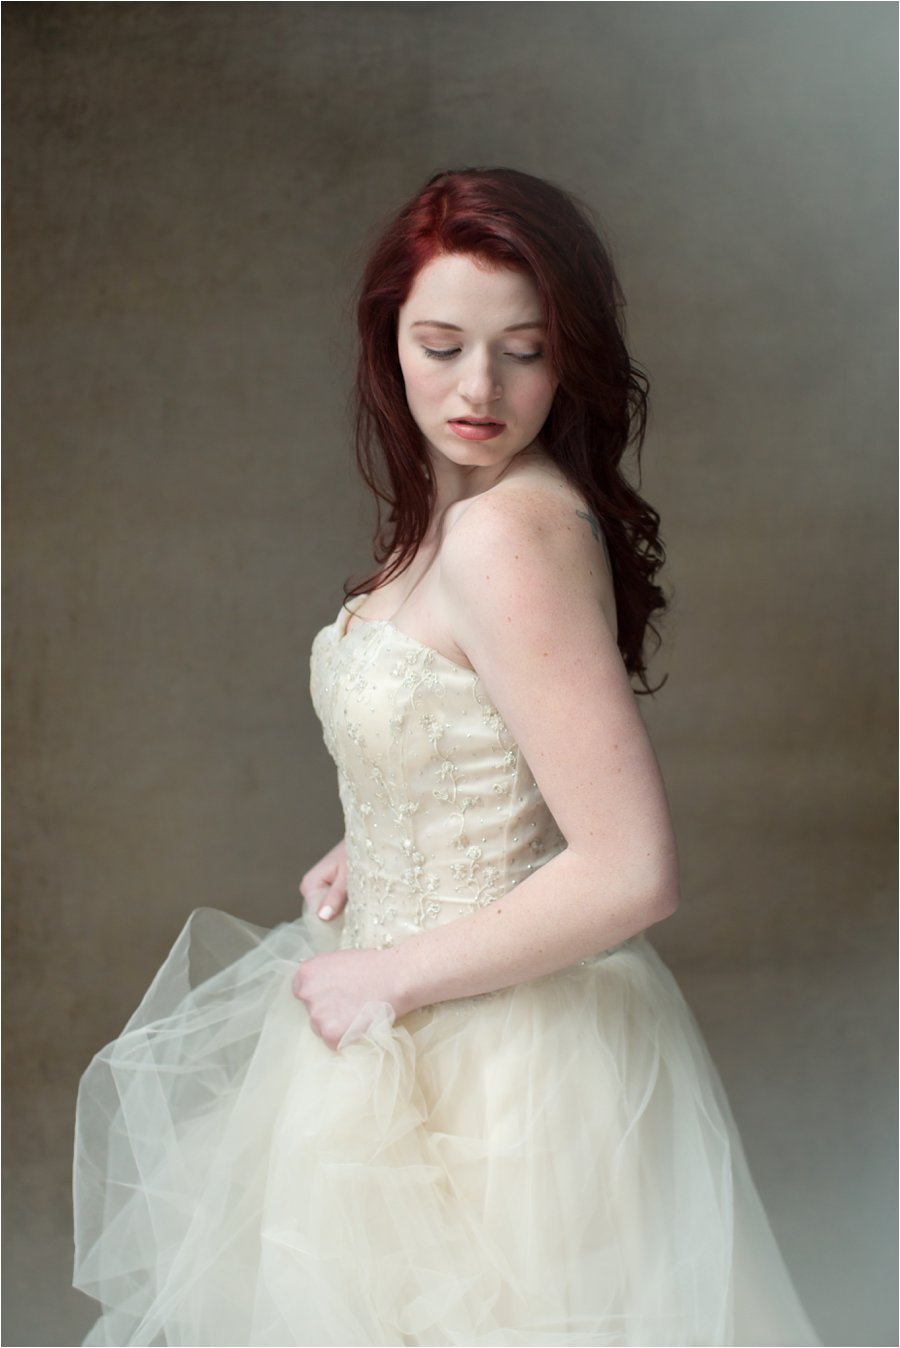 Portrait in Tulle Gown 3 © 2015 Maundy Mitchell_0005.jpg